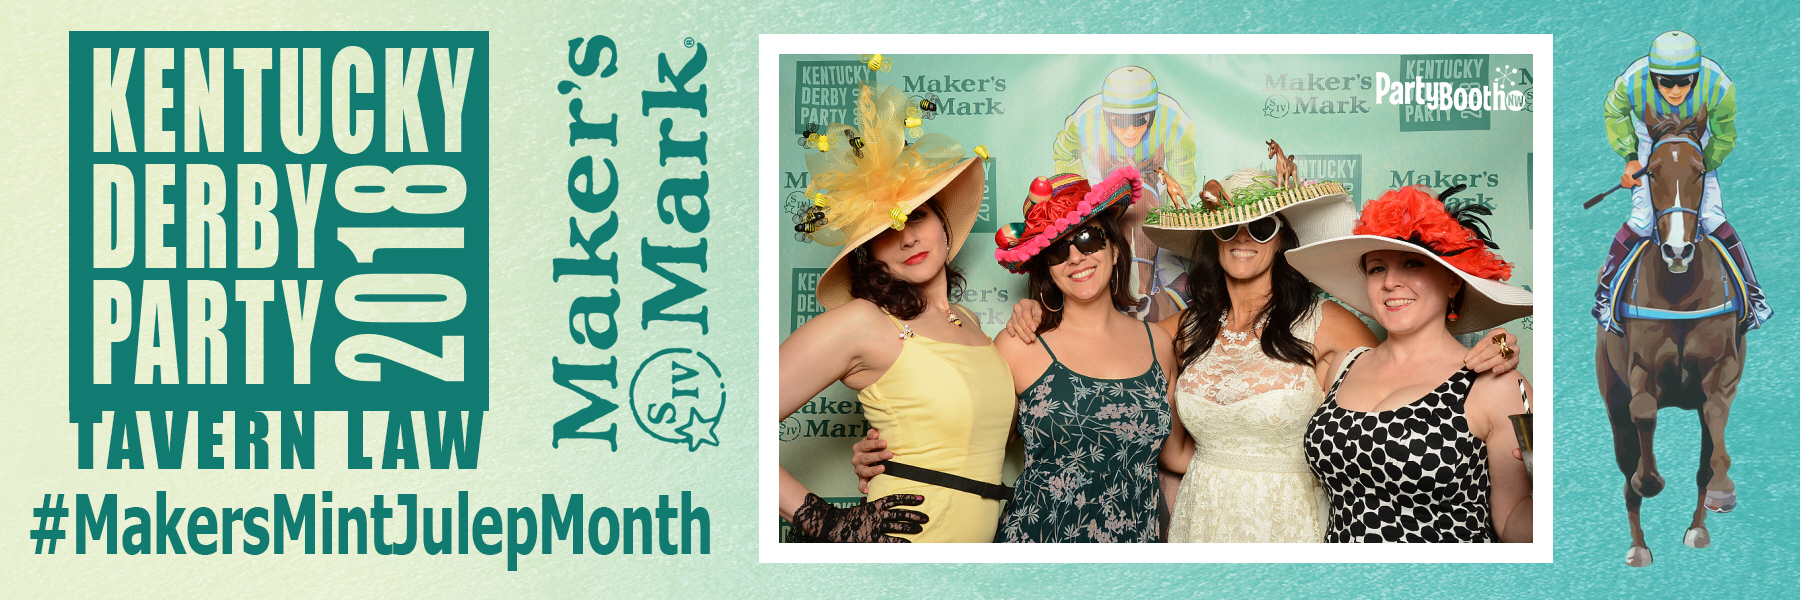 Celebrating the 144th running of the Kentucky Derby in Seattle, one of the greatest parties around was with Maker's Mark at Tavern Law in Seattle's Capitol Hill neighborhood, with Mint Juleps, hats and general merriment. Tonight we celebrate the race winner, Justify, with a Maker's Mark Toast - Tonight We PartyBooth! Seattle Photo Booth ©2018 PartyBoothNW.com